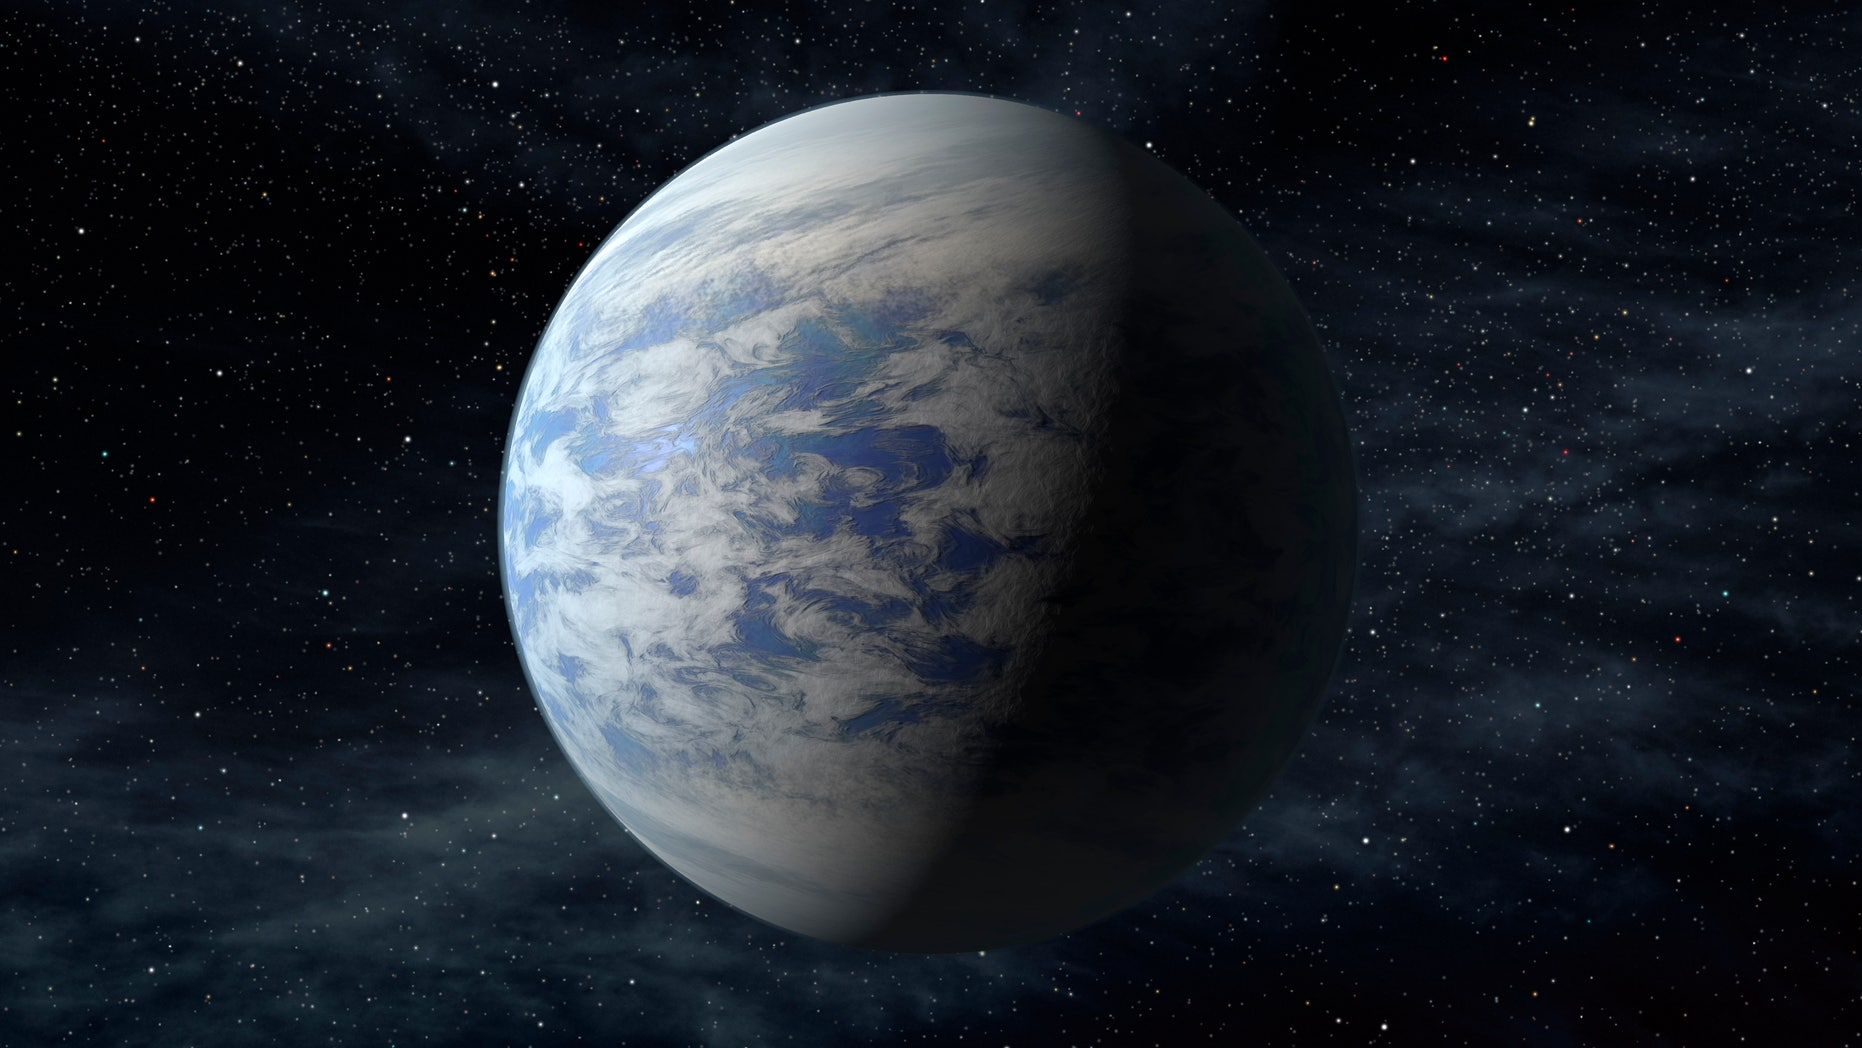 This artist's rendition provided by NASA shows Kepler-69c, a super-Earth-size planet in the habitable zone of a star like our sun, located about 2,700 light-years from Earth in the constellation Cygnus.